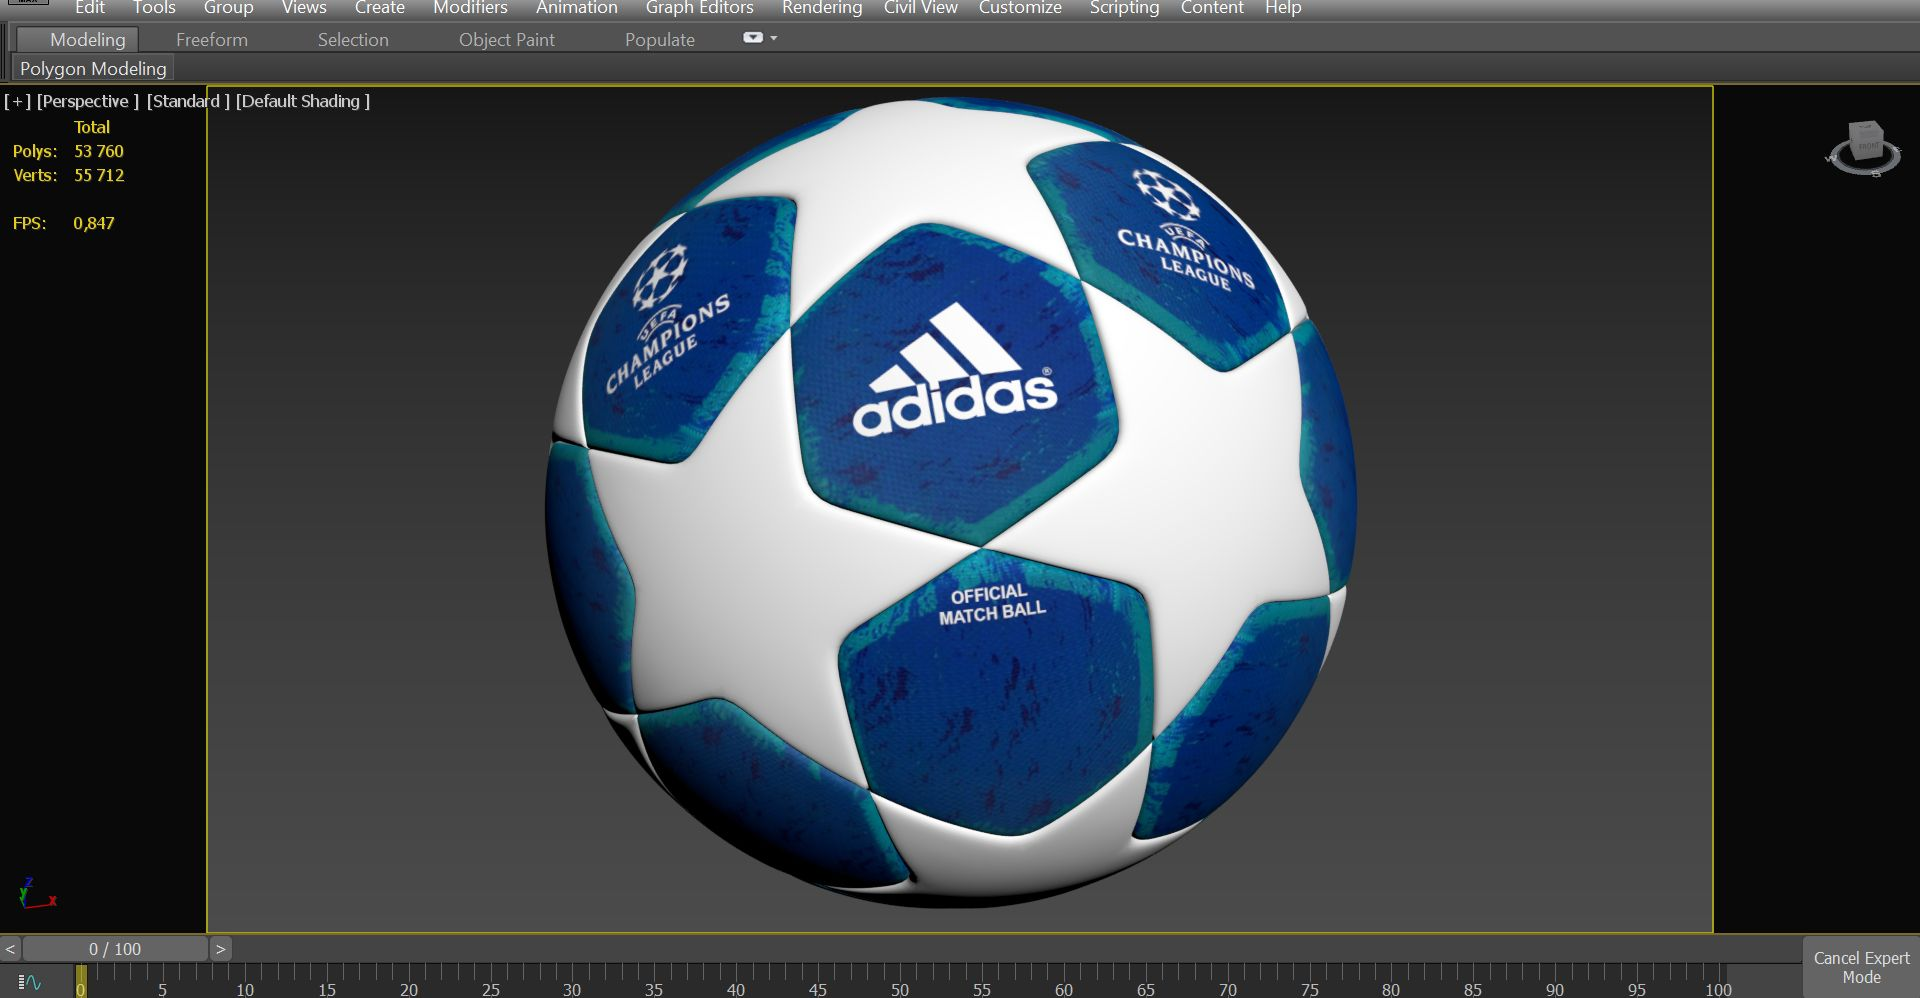 uefa champions league official ball 2019 uefa champions league champions league league uefa champions league official ball